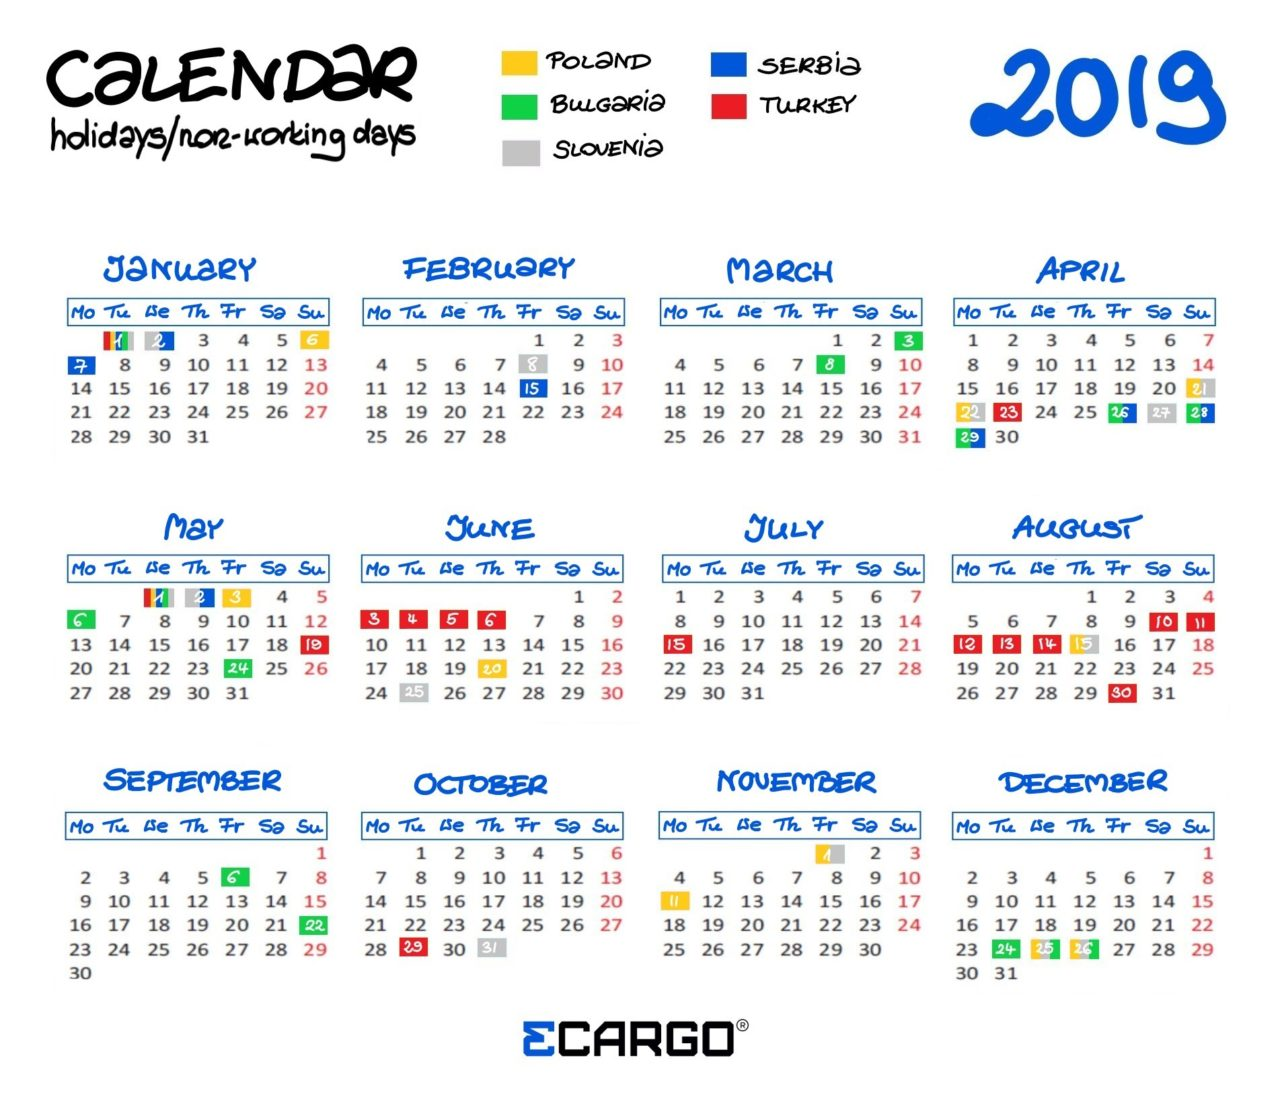 Working Days Calendar 2019 The calendar of holidays and non working days in 2019   3CARGO